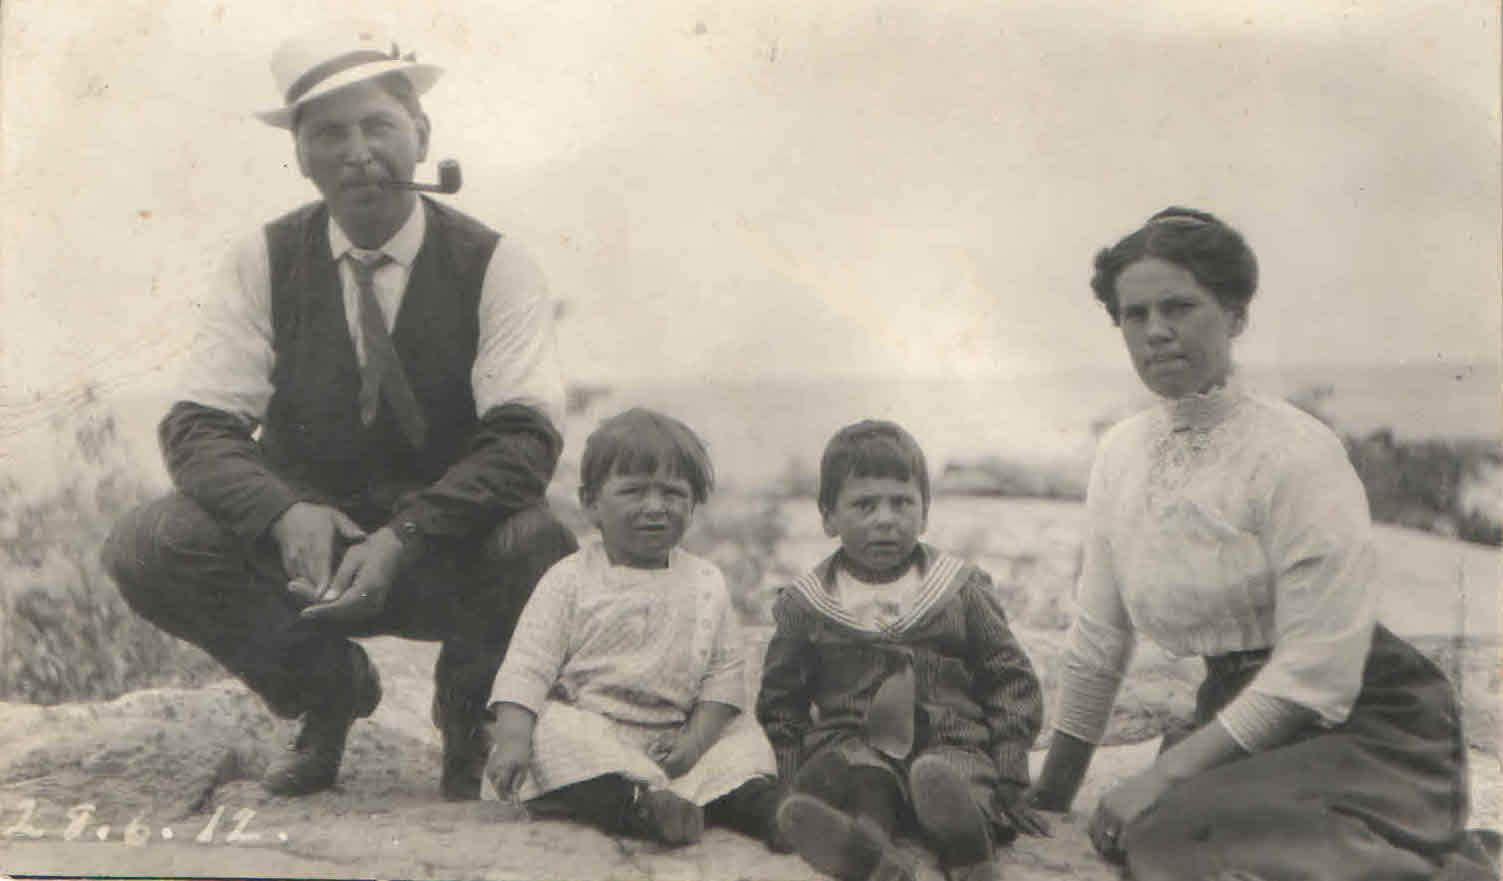 Louis, William, Alcide, and Cecilia Lamondin 1912